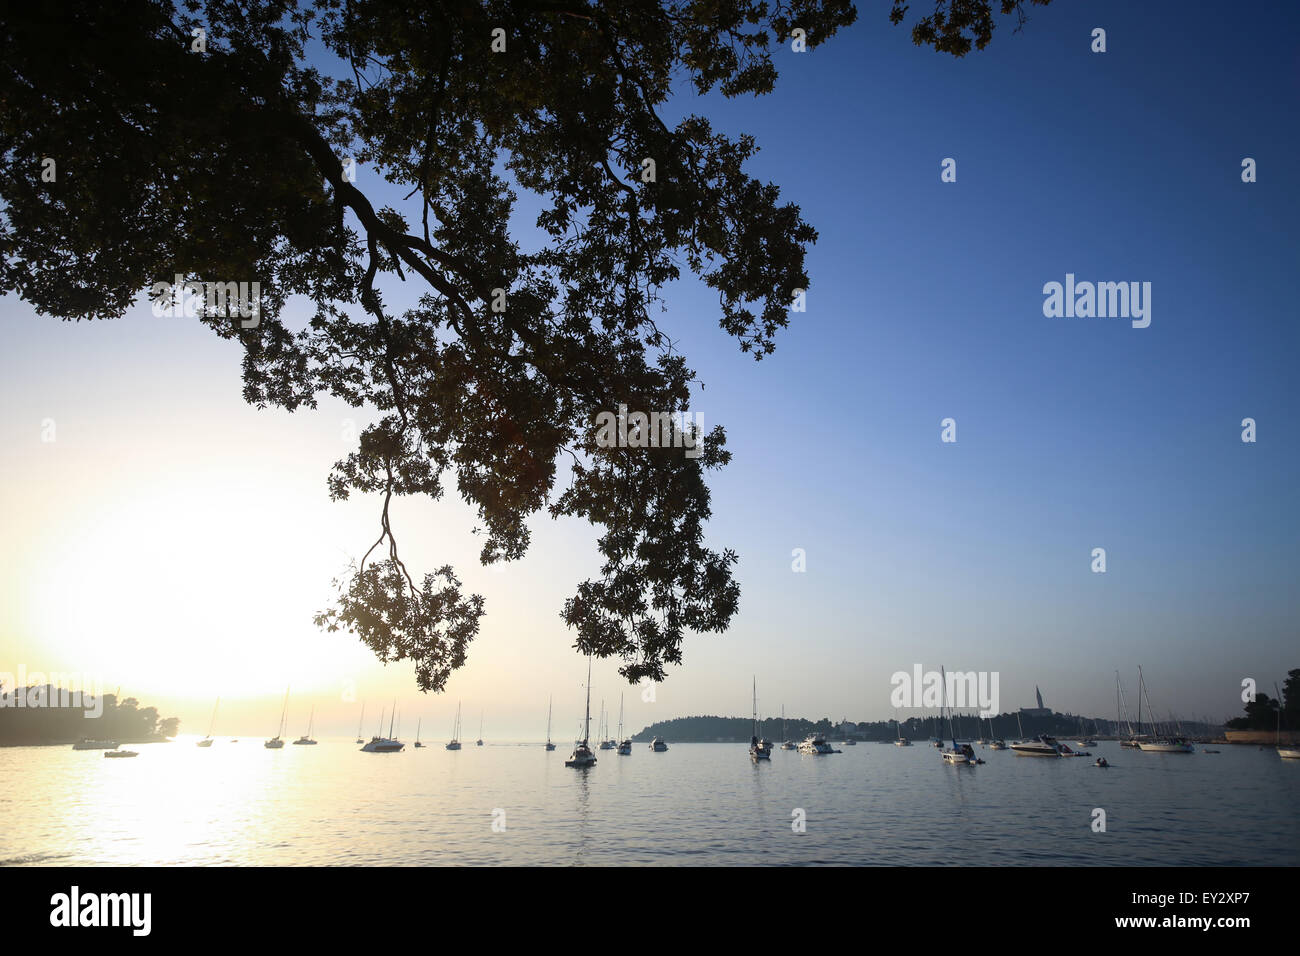 A view of a group of sailboats anchored in the Adriatic sea with silhouette of a tree branch at sunset in Rovinj, - Stock Image